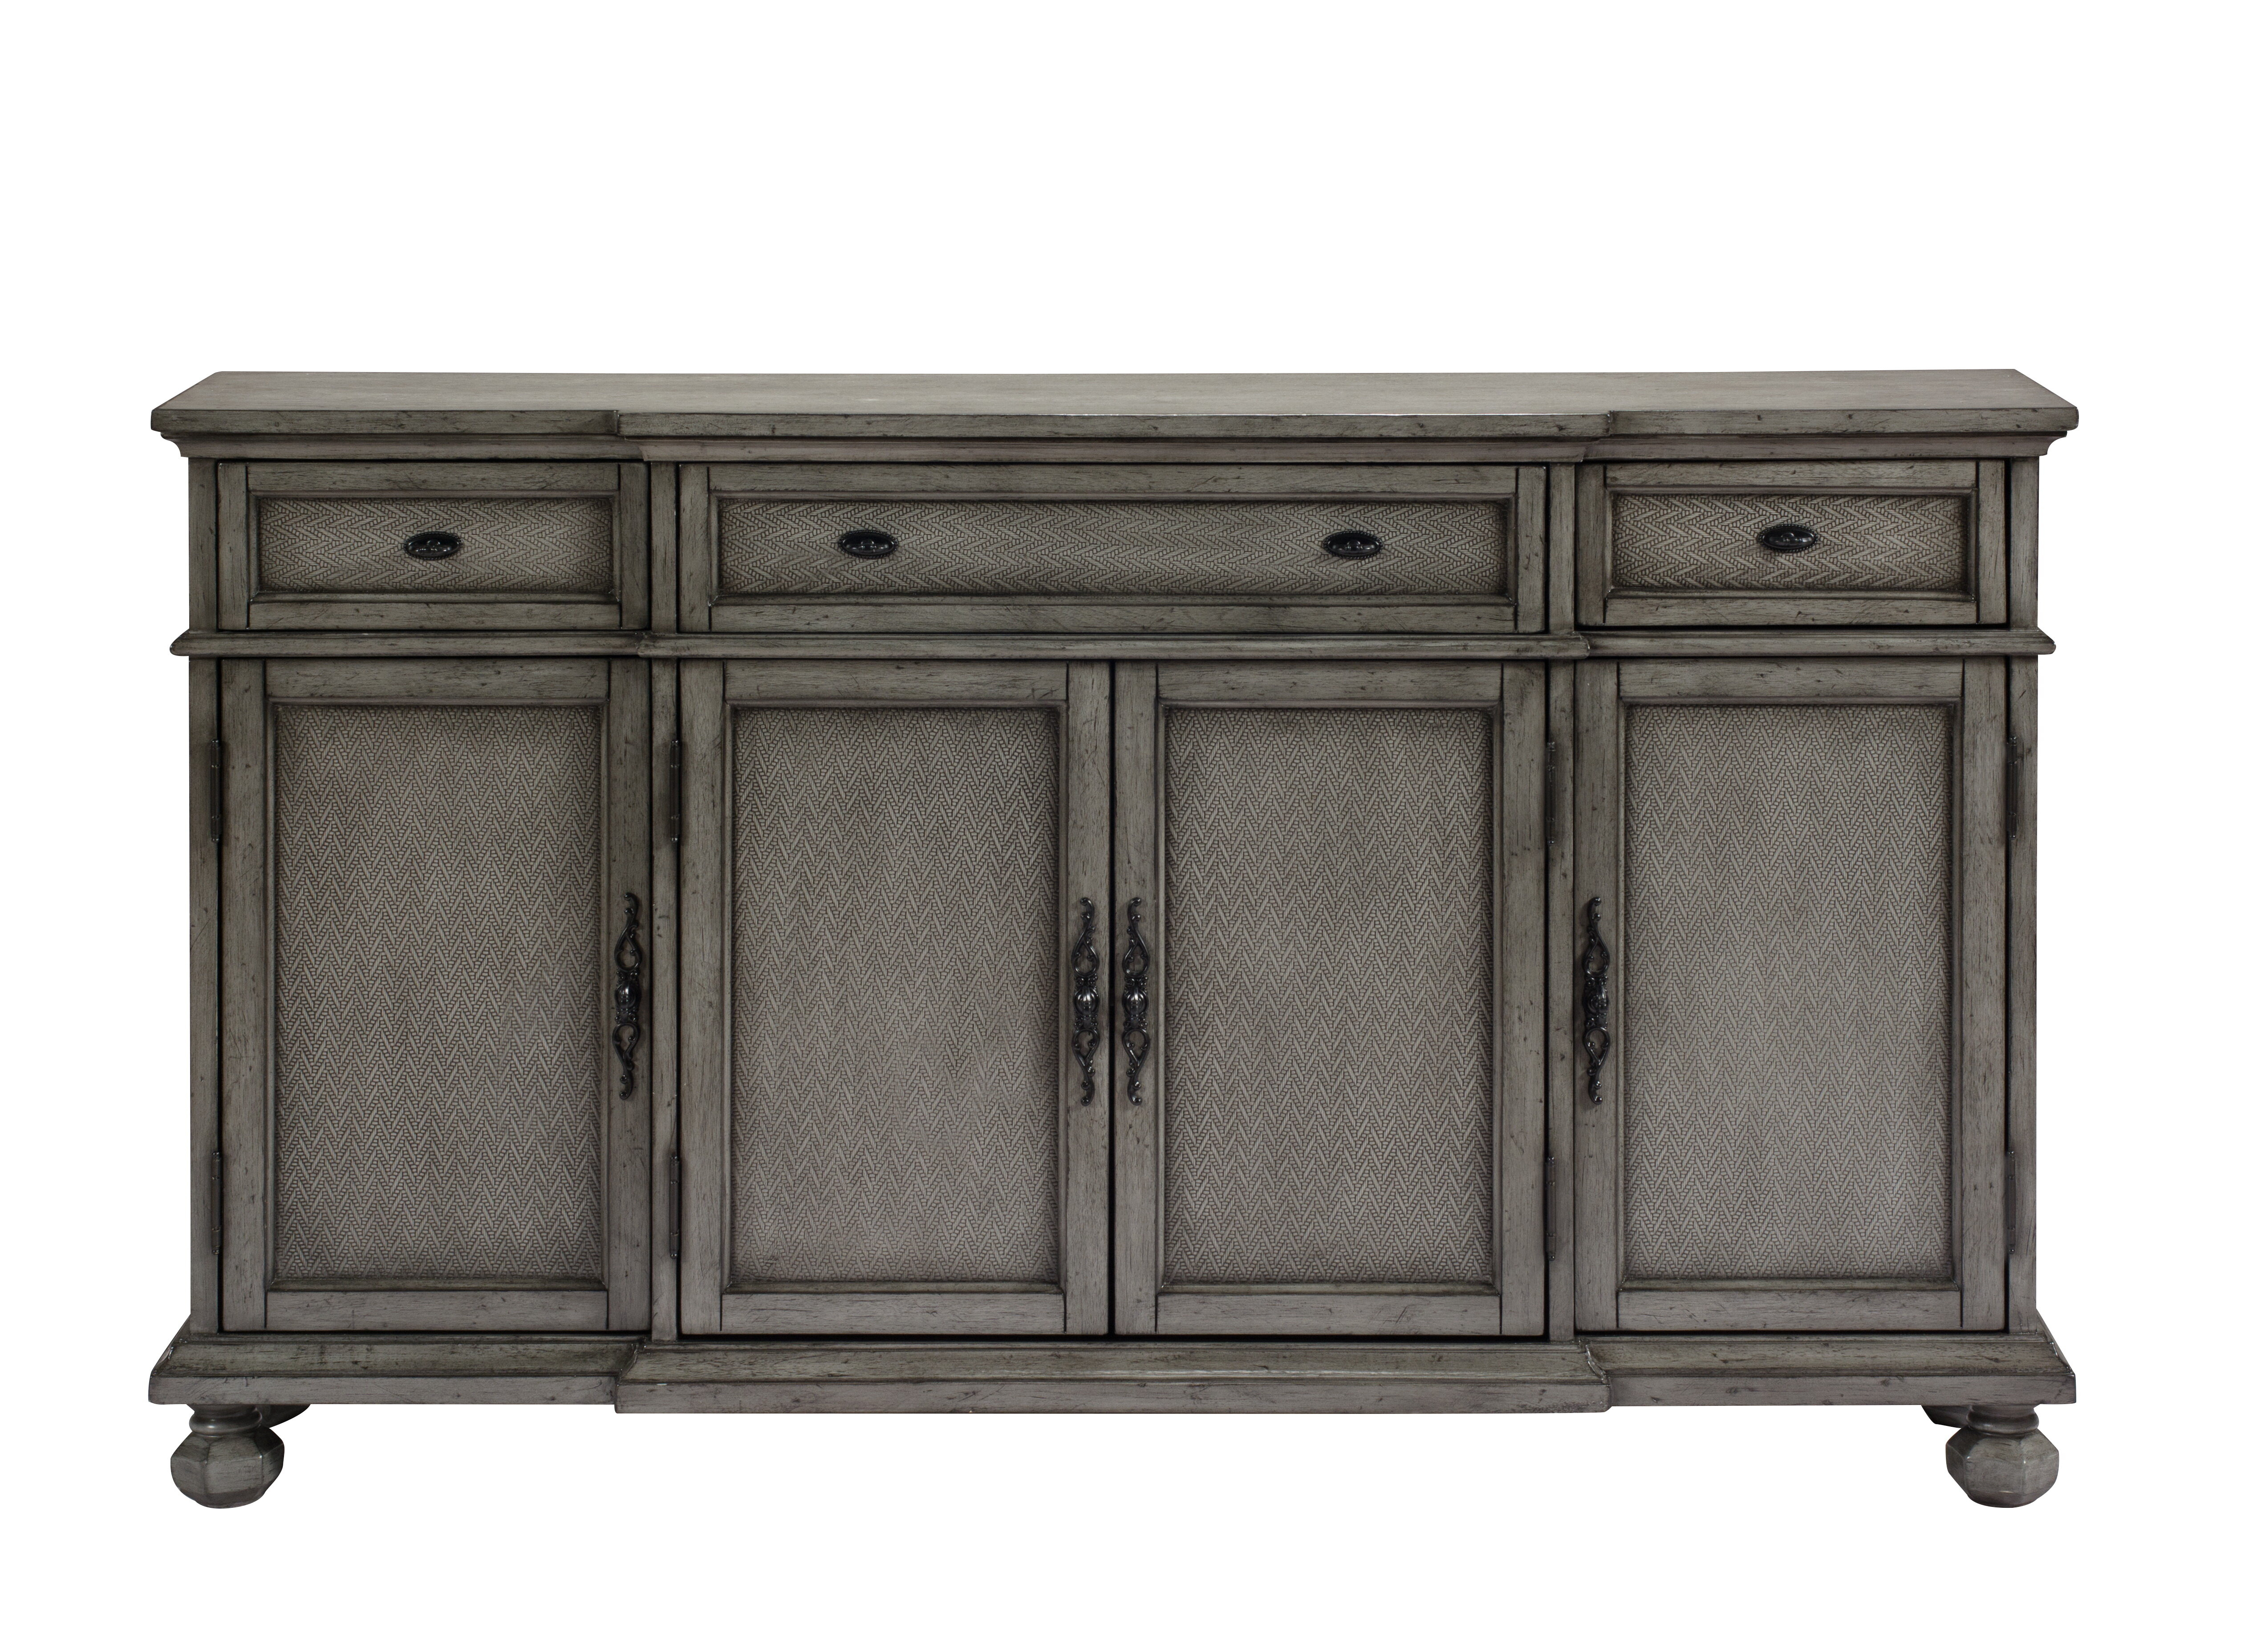 Giulia 3 Drawer Credenza in Ilyan Traditional Wood Sideboards (Image 11 of 30)